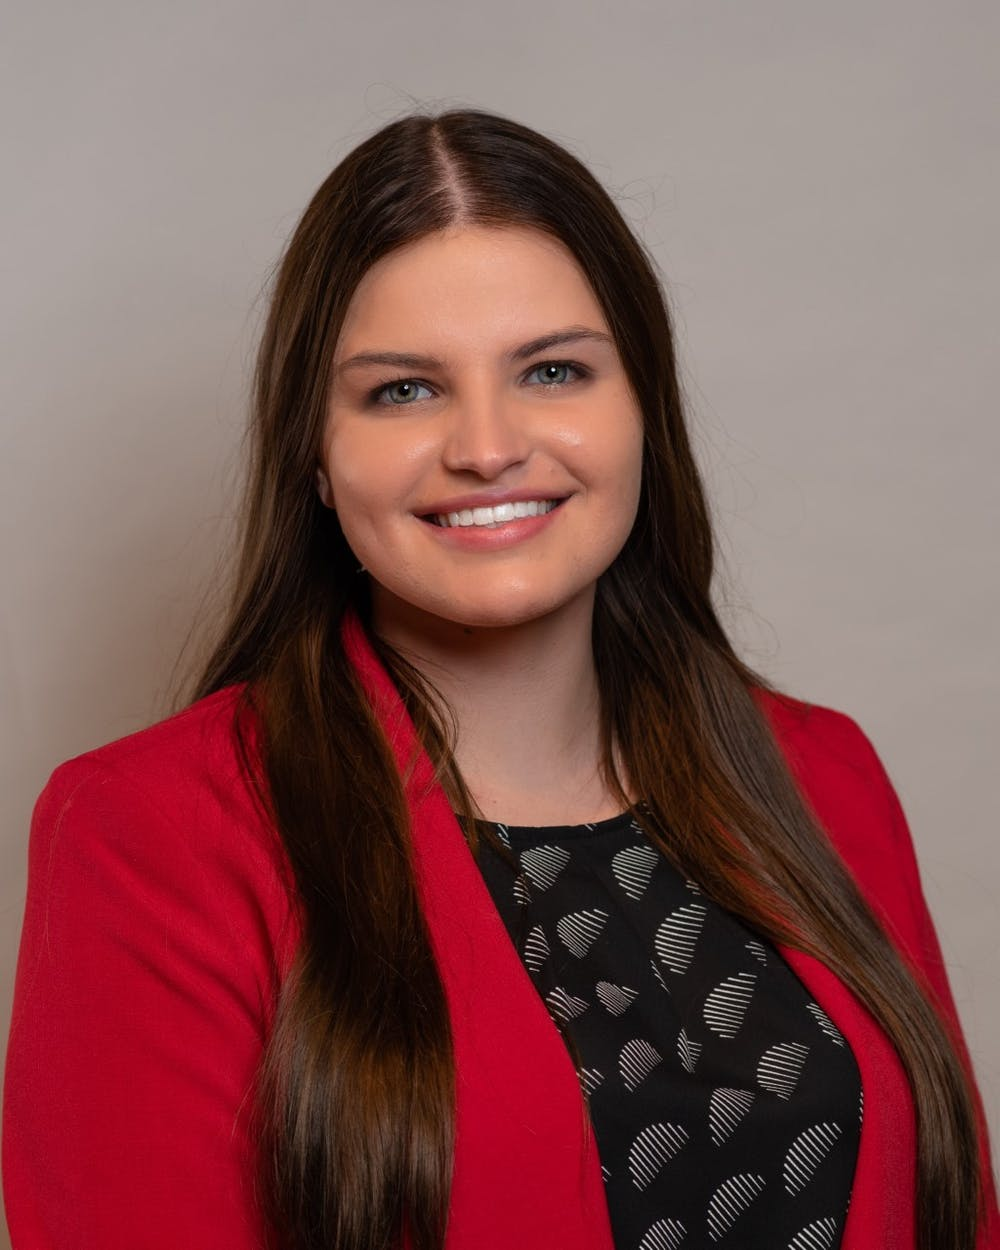 <p>Amy Wyse, junior international business, economics and Spanish triple major, was announced as Ball State&#x27;s new student trustee in June. She will serve in her position through June 30, 2023. <strong>Amy Wyse, Photo Provided</strong></p>